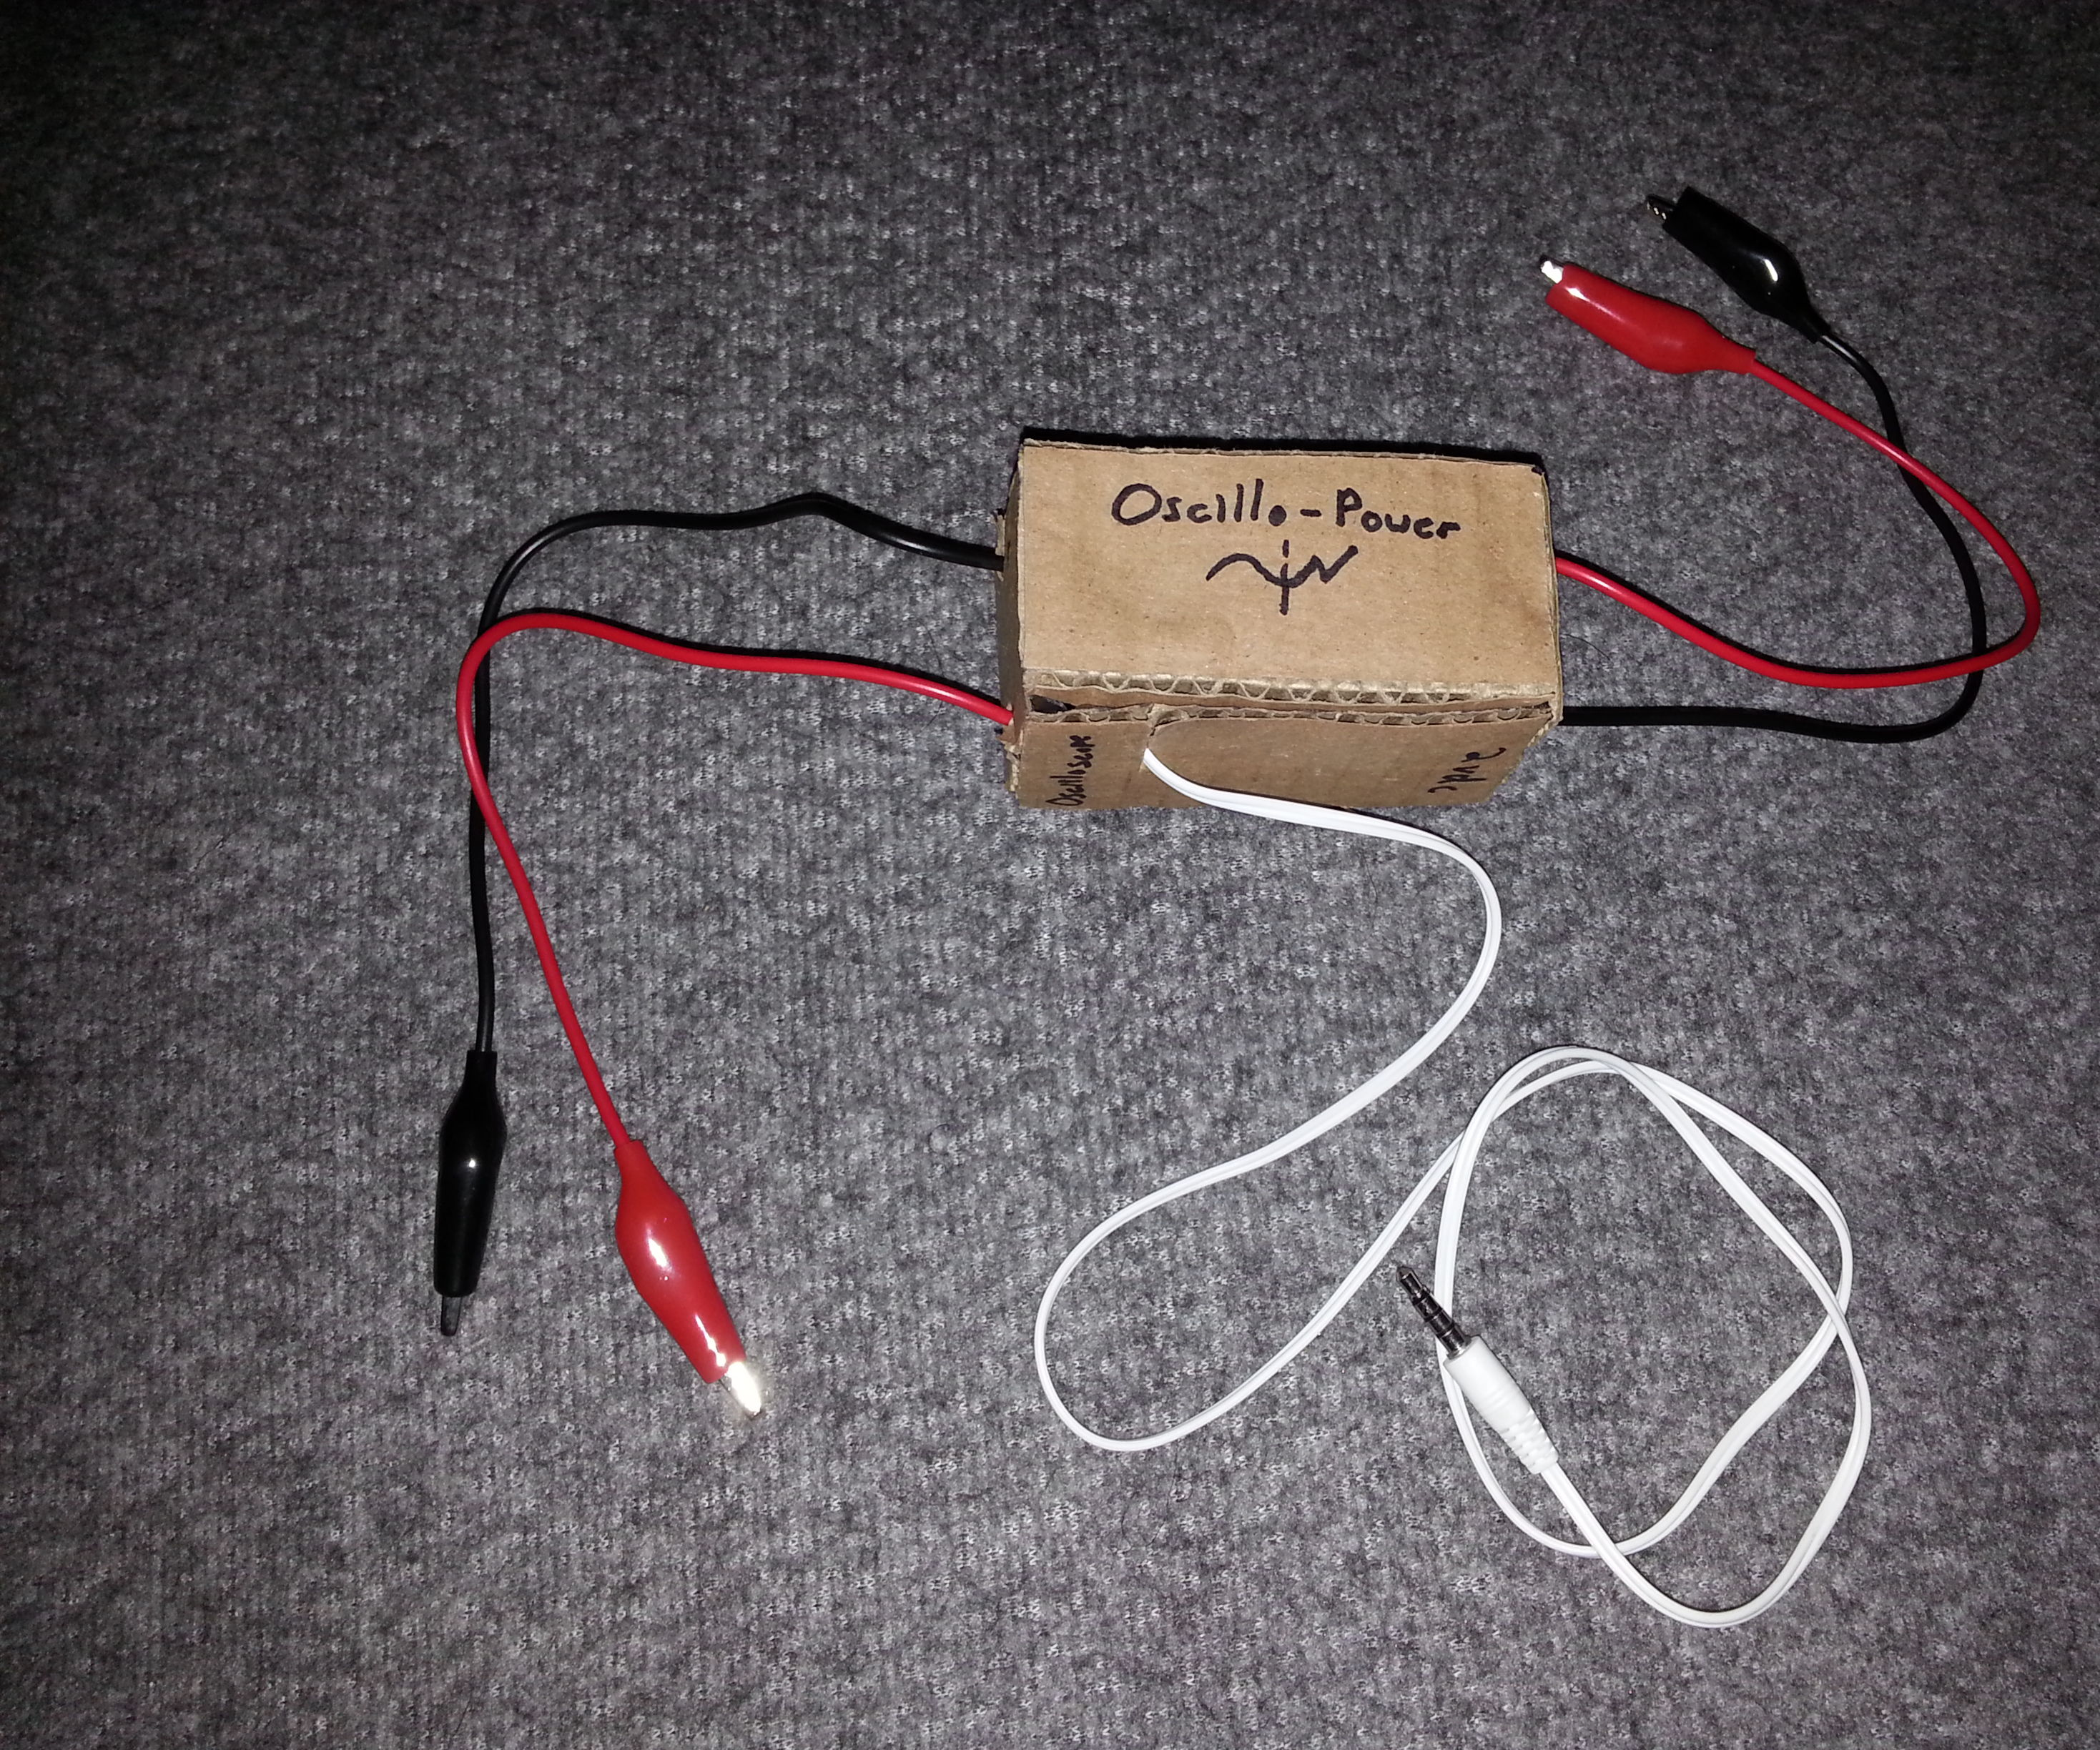 Oscillo-Power: Audio Jack Oscilloscope/Power Supply for Smart Phones or Other Devices